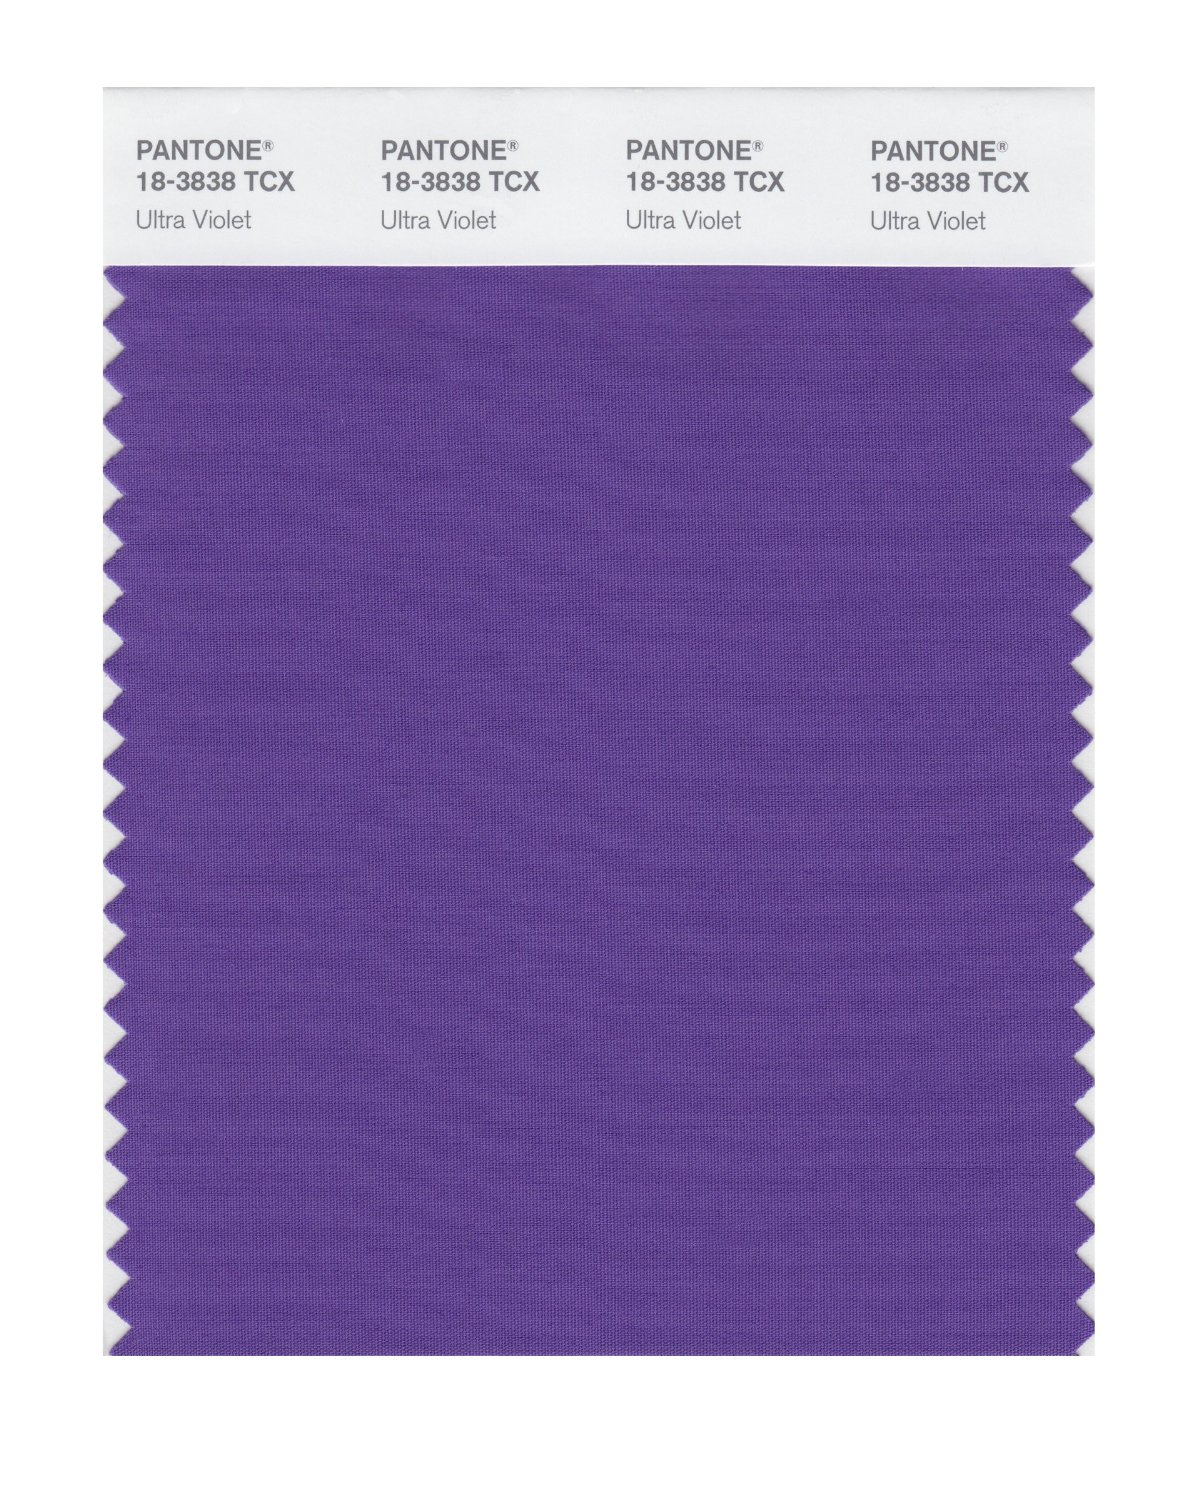 Pantone Smart Swatch 18-3838 Ultra Violet